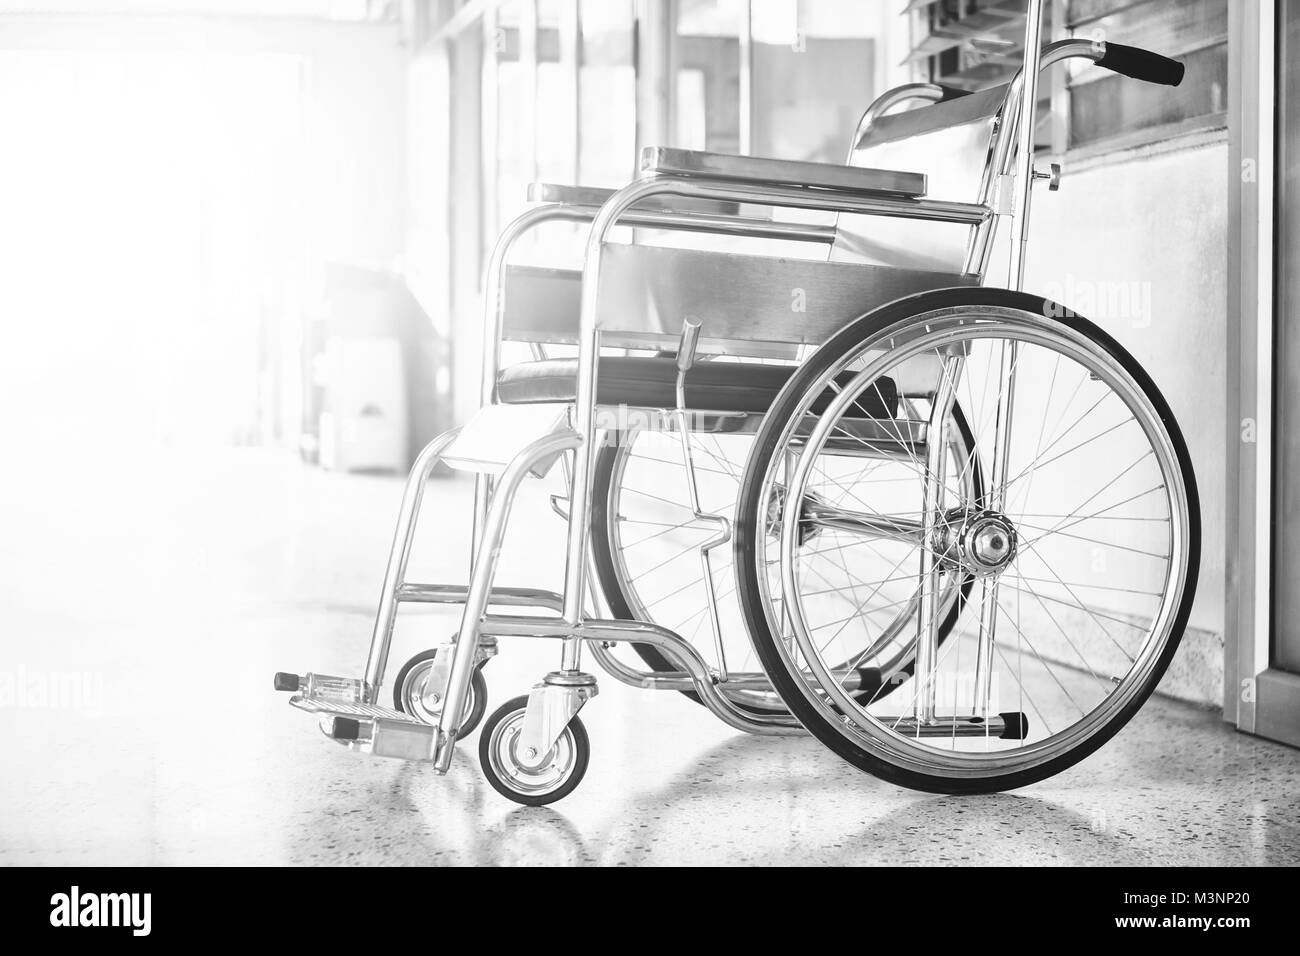 Wheelchairs in the hospital ,Wheelchairs waiting for patient services. with light copy space on left area - Stock Image